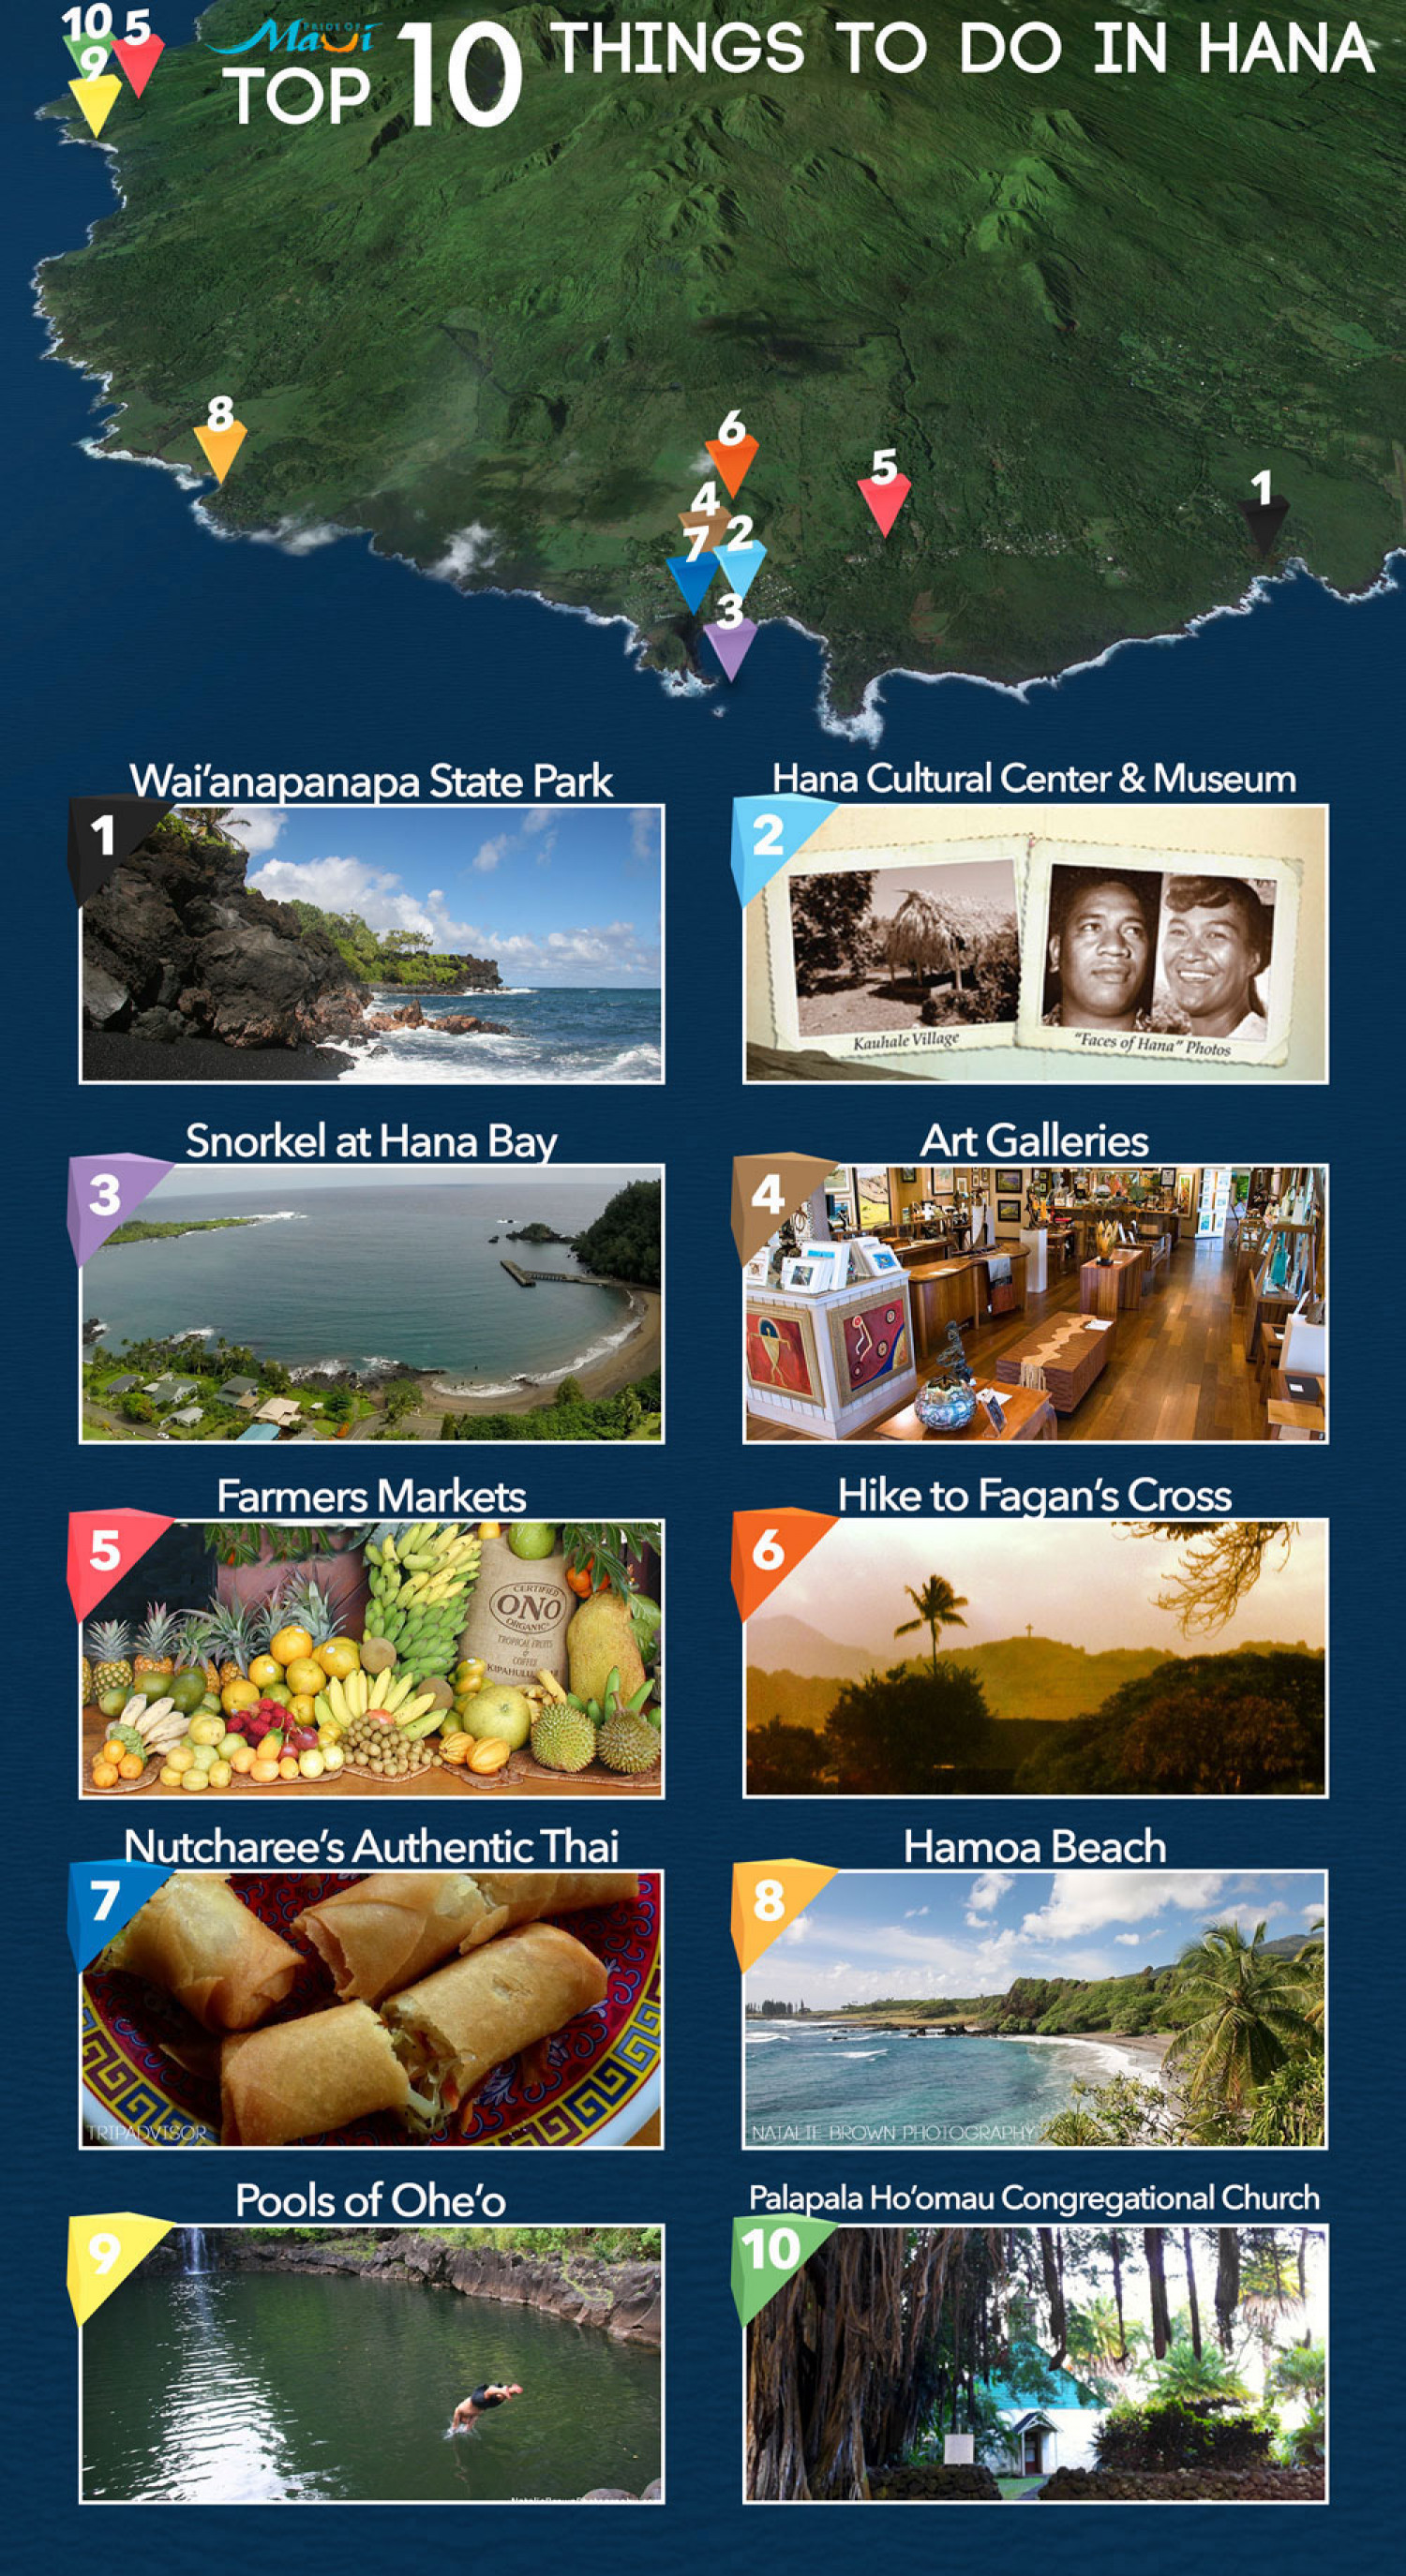 Top 10 Things to Do in Hana Infographic